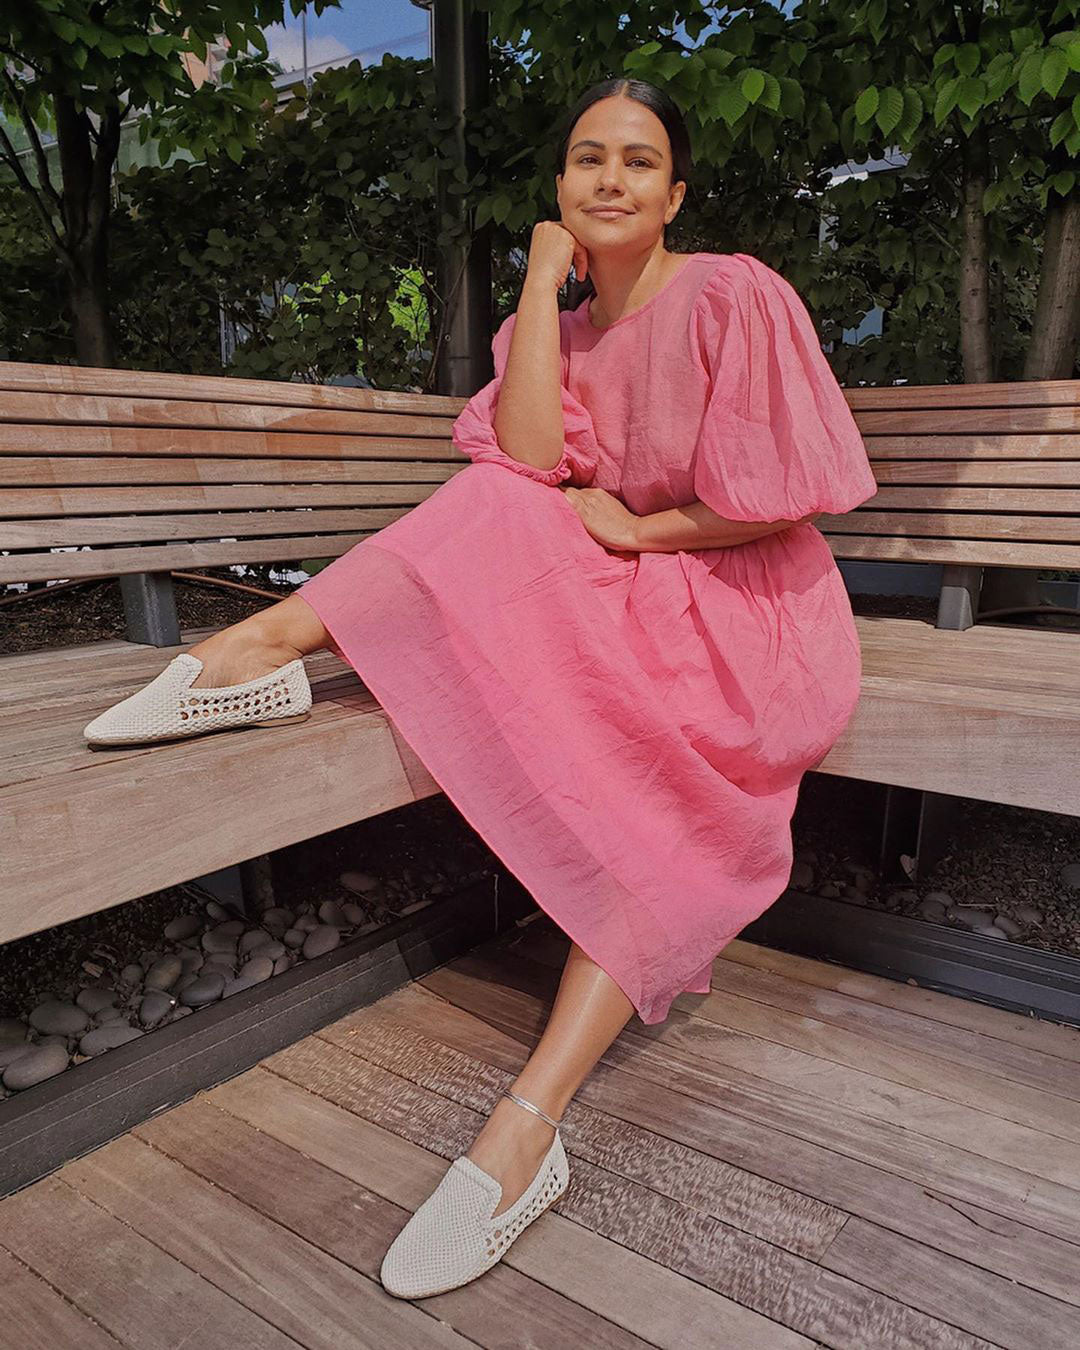 woman sitting on patio wearing white woven flats with bright pink dress